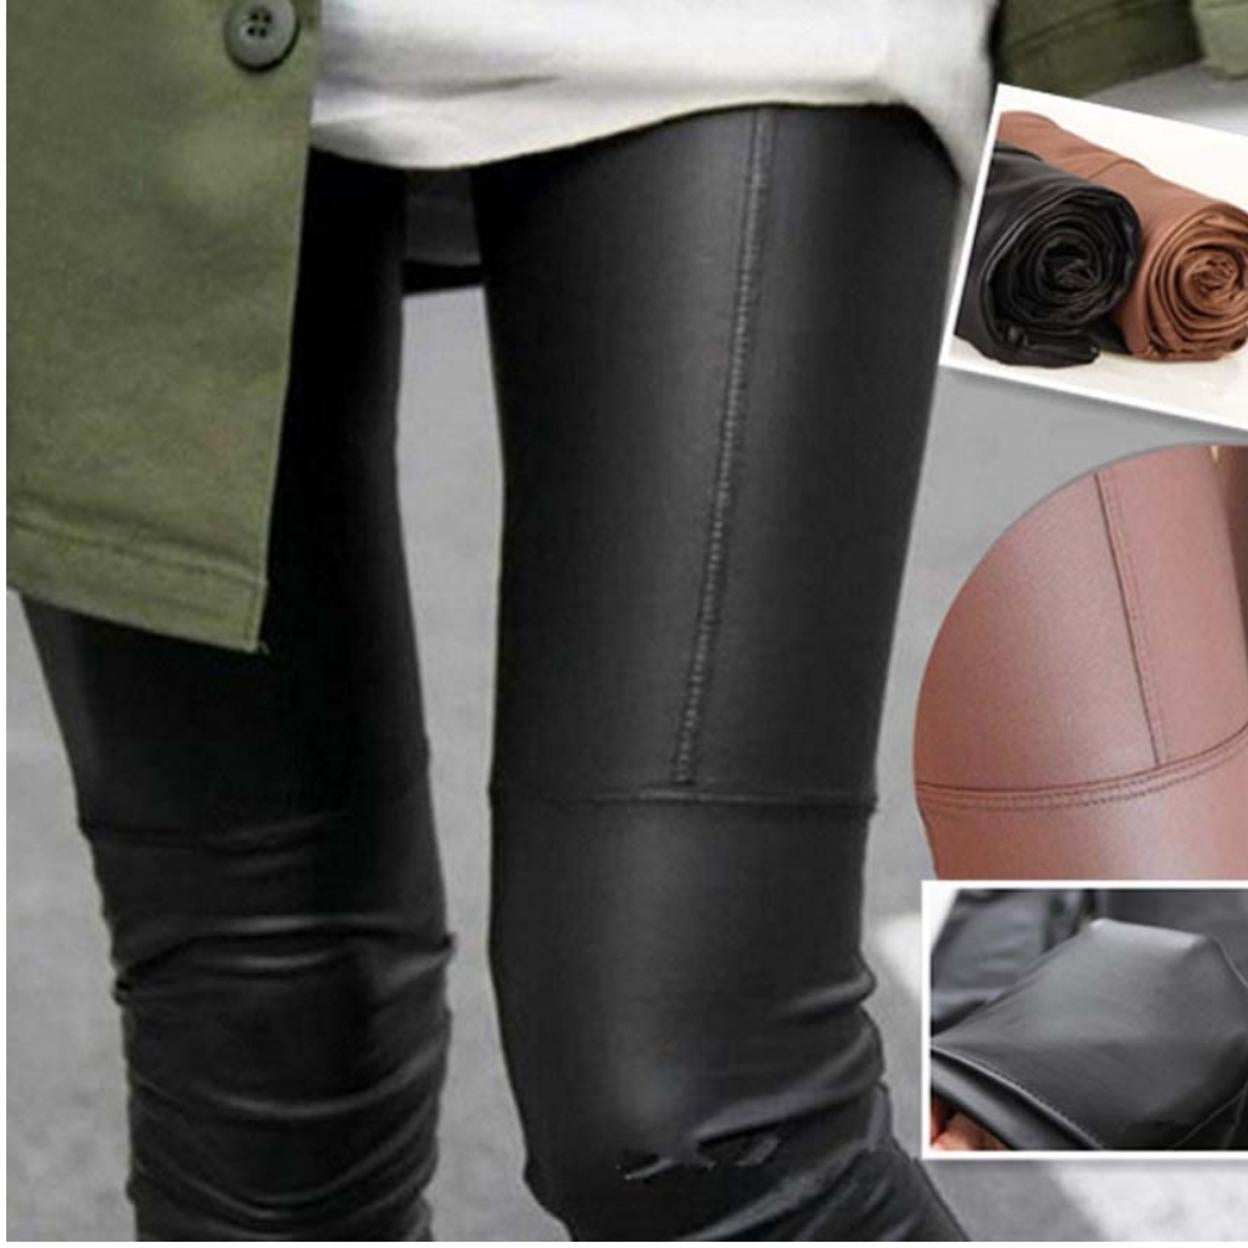 4ddbb05675a Shop Hot Fashionable Autumn Winter Faux Leather Leggings Pants For Women -  On Sale - Free Shipping On Orders Over  45 - Overstock - 26953681